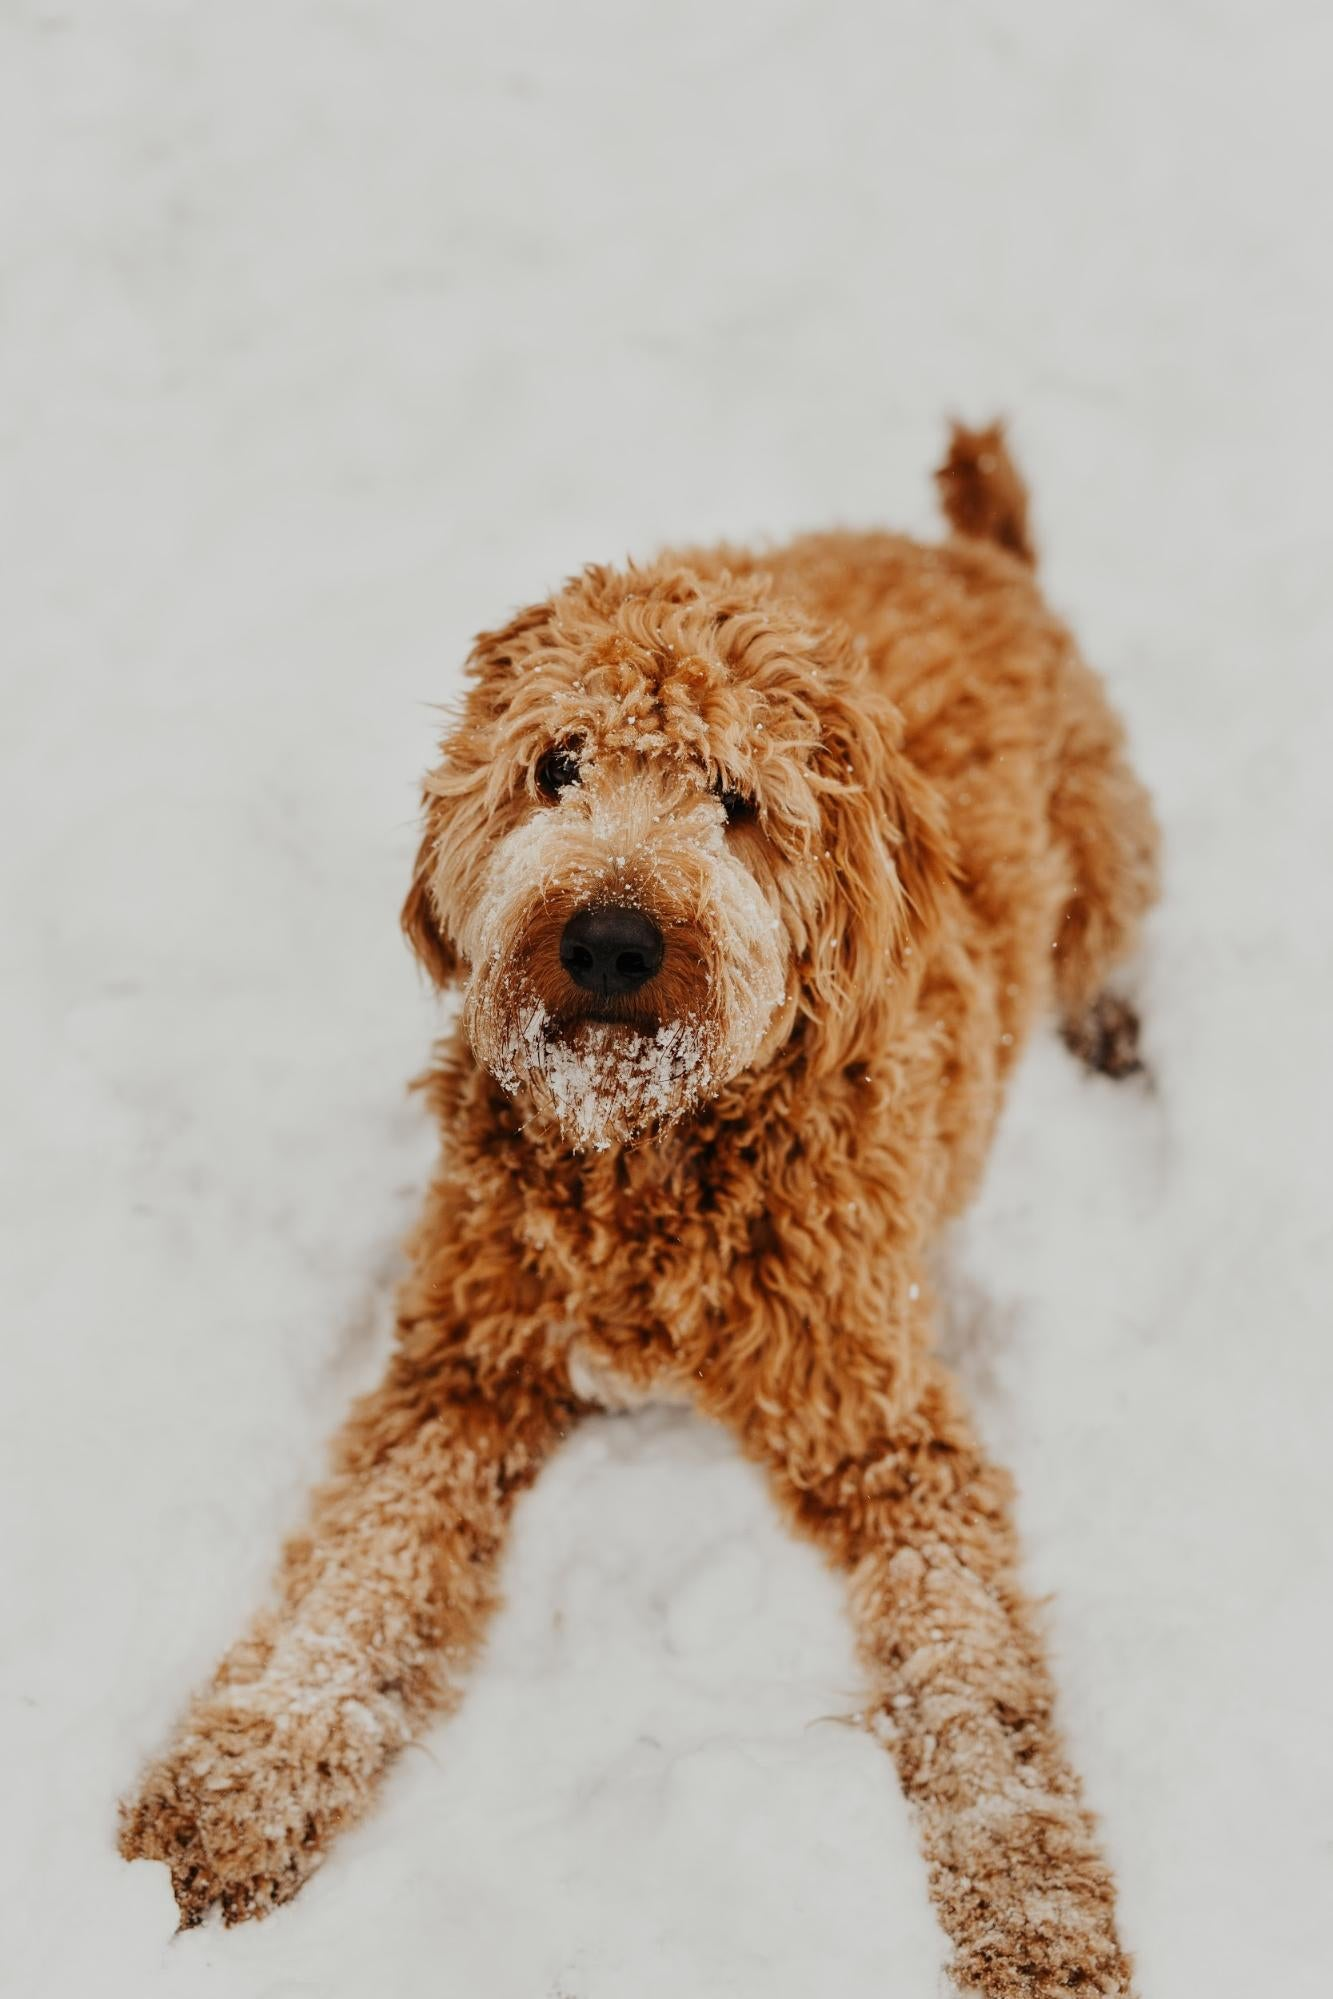 Large dog laying in the snow.